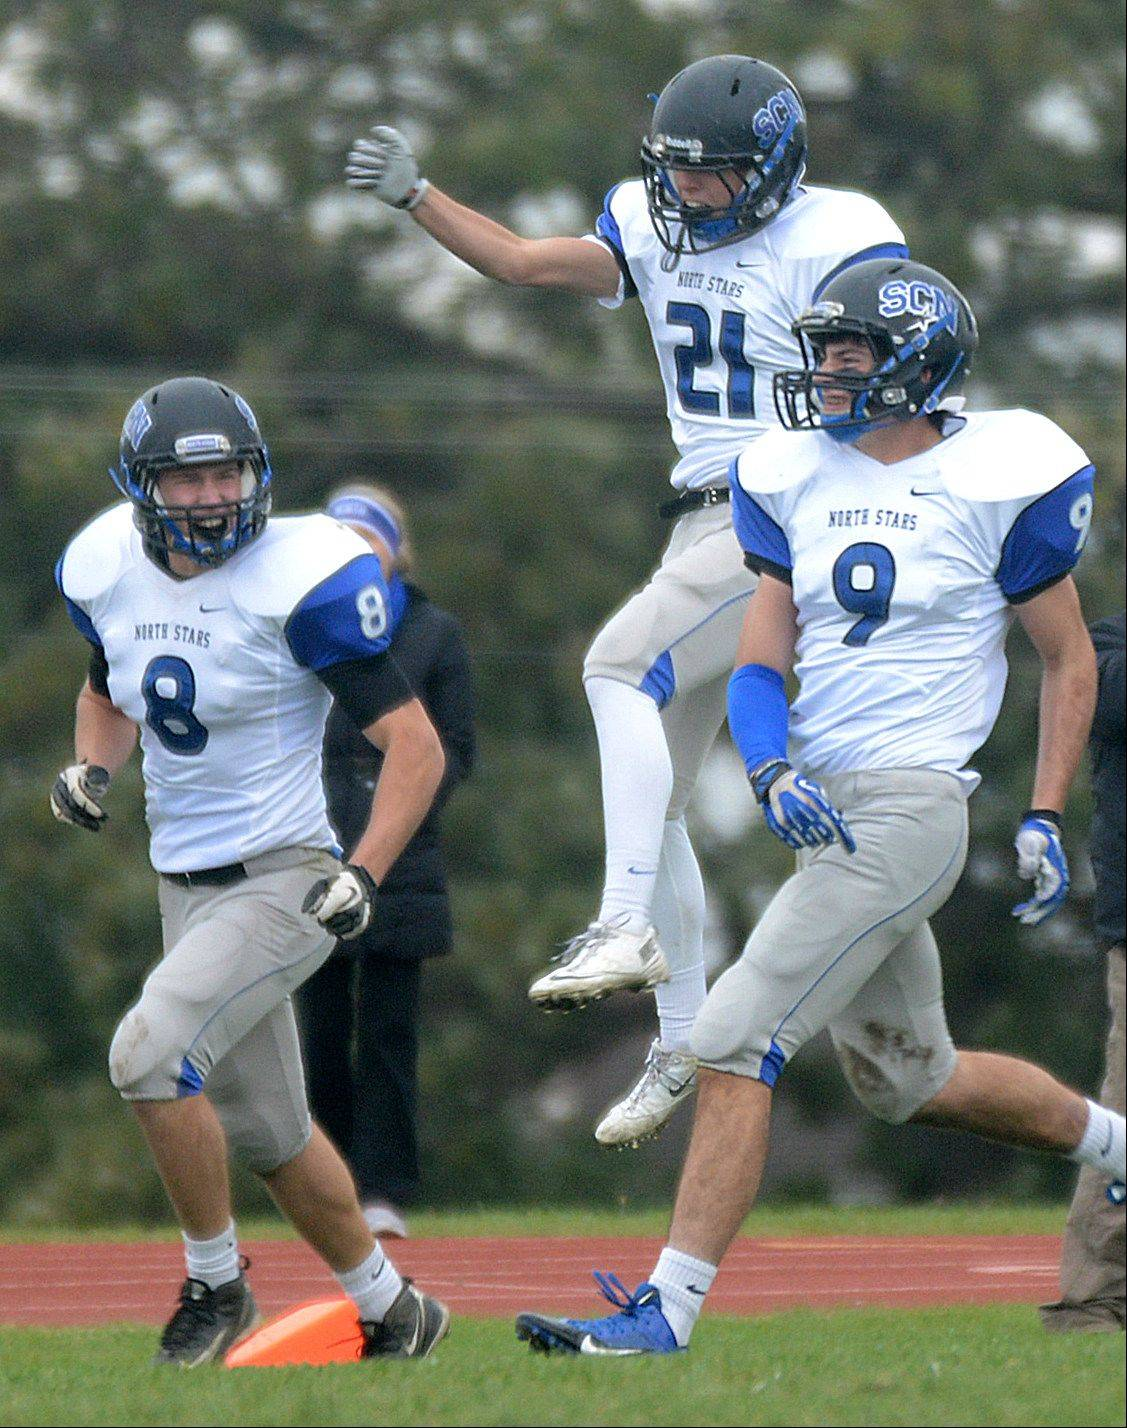 St. Charles North's, from left, Nick Drawant, Dylan Hunter, and Cameron MacKenzie celebrate a touchdown which was scored on a South Elgin fumble in the end zone.